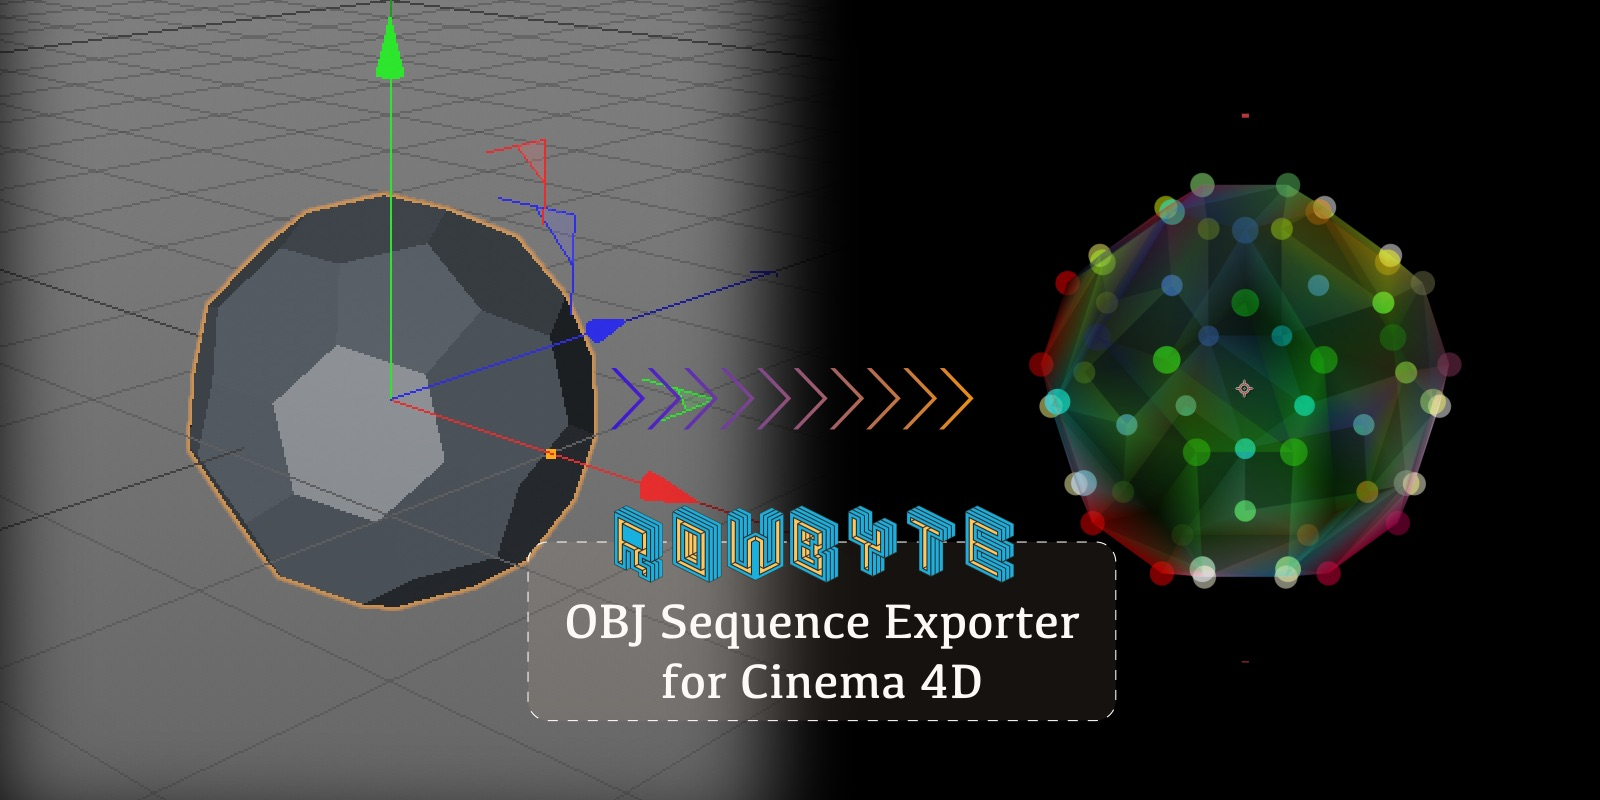 Rowbyte - Plexus OBJ Sequence Exporter For Cinema 4D Is